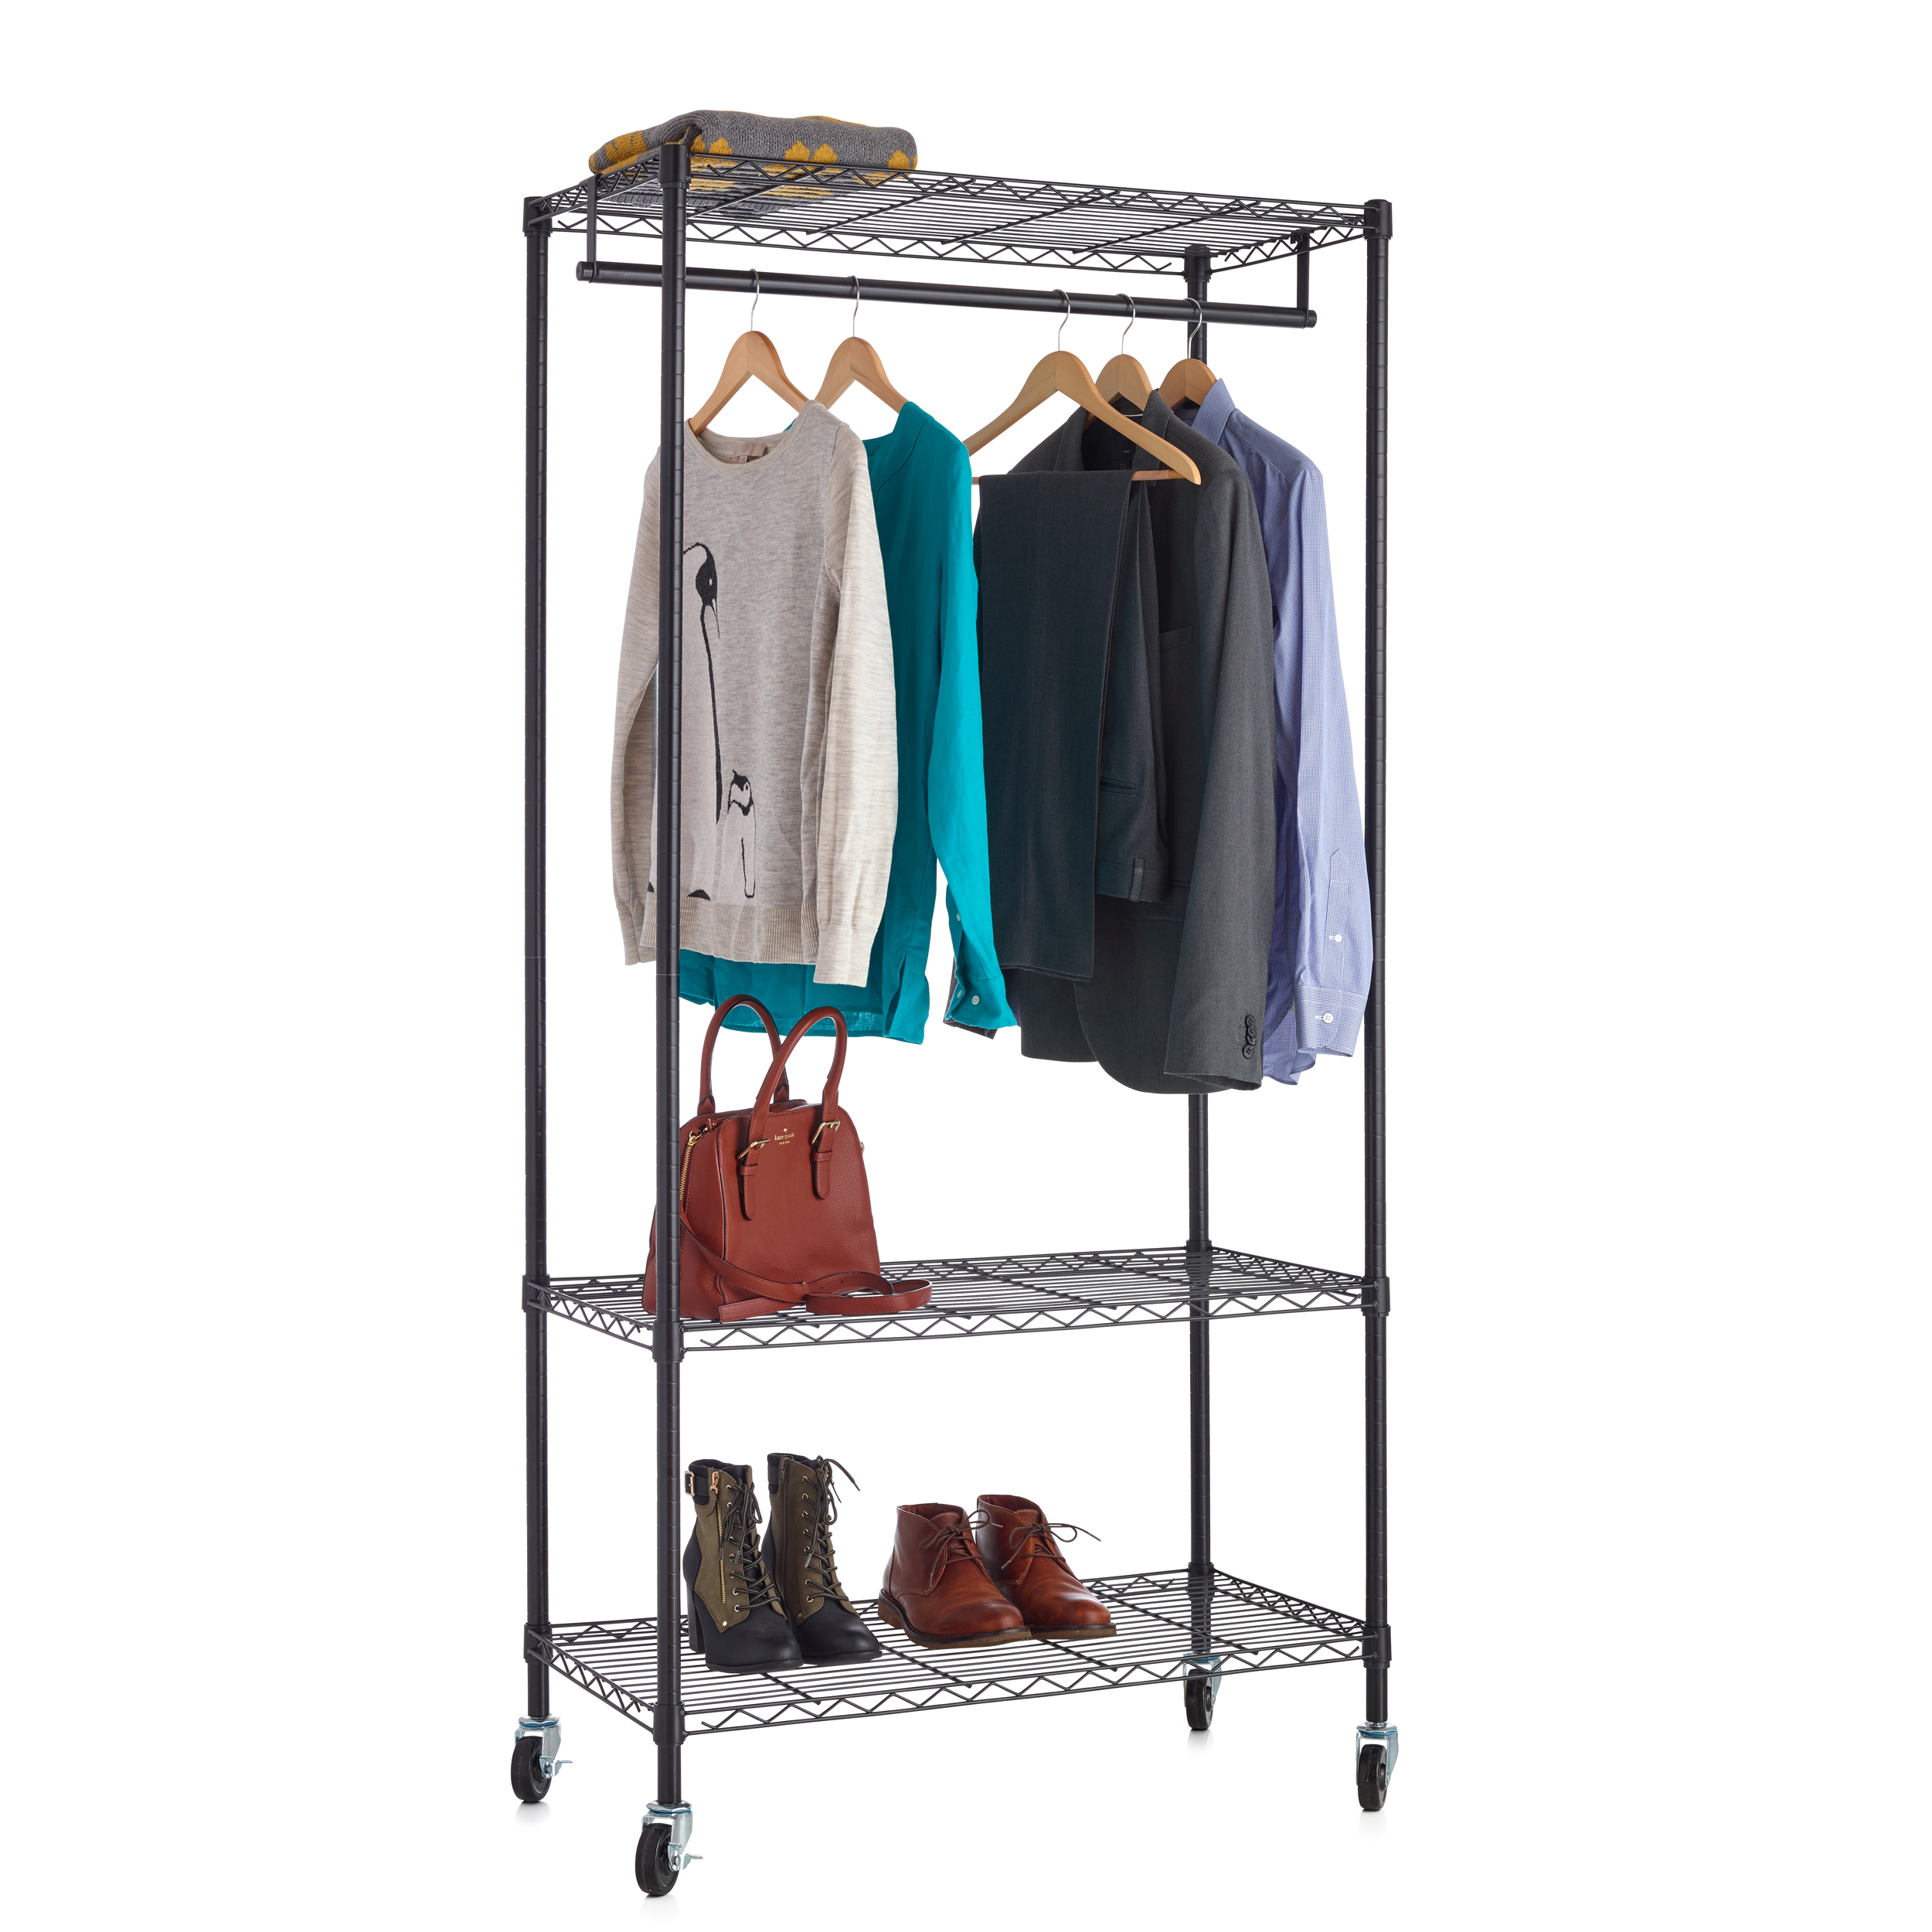 Cloth Rack 18x48 3 Tier Black Wire Clothes Rack | Wire Shelf Additions